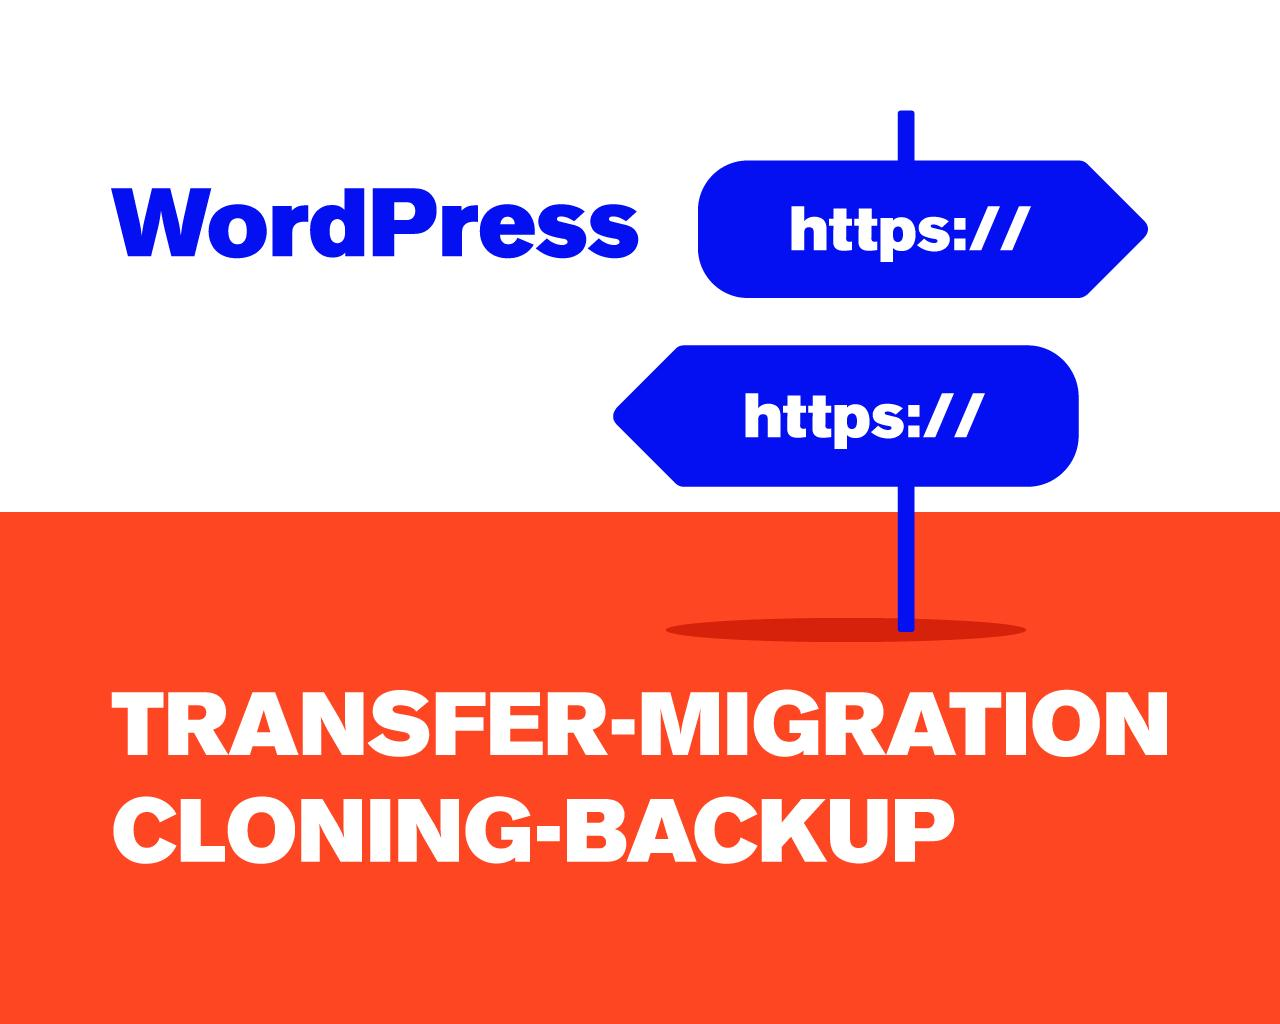 Transfer-Migration-Cloning-Backup of WordPress Website by goografx - 109723